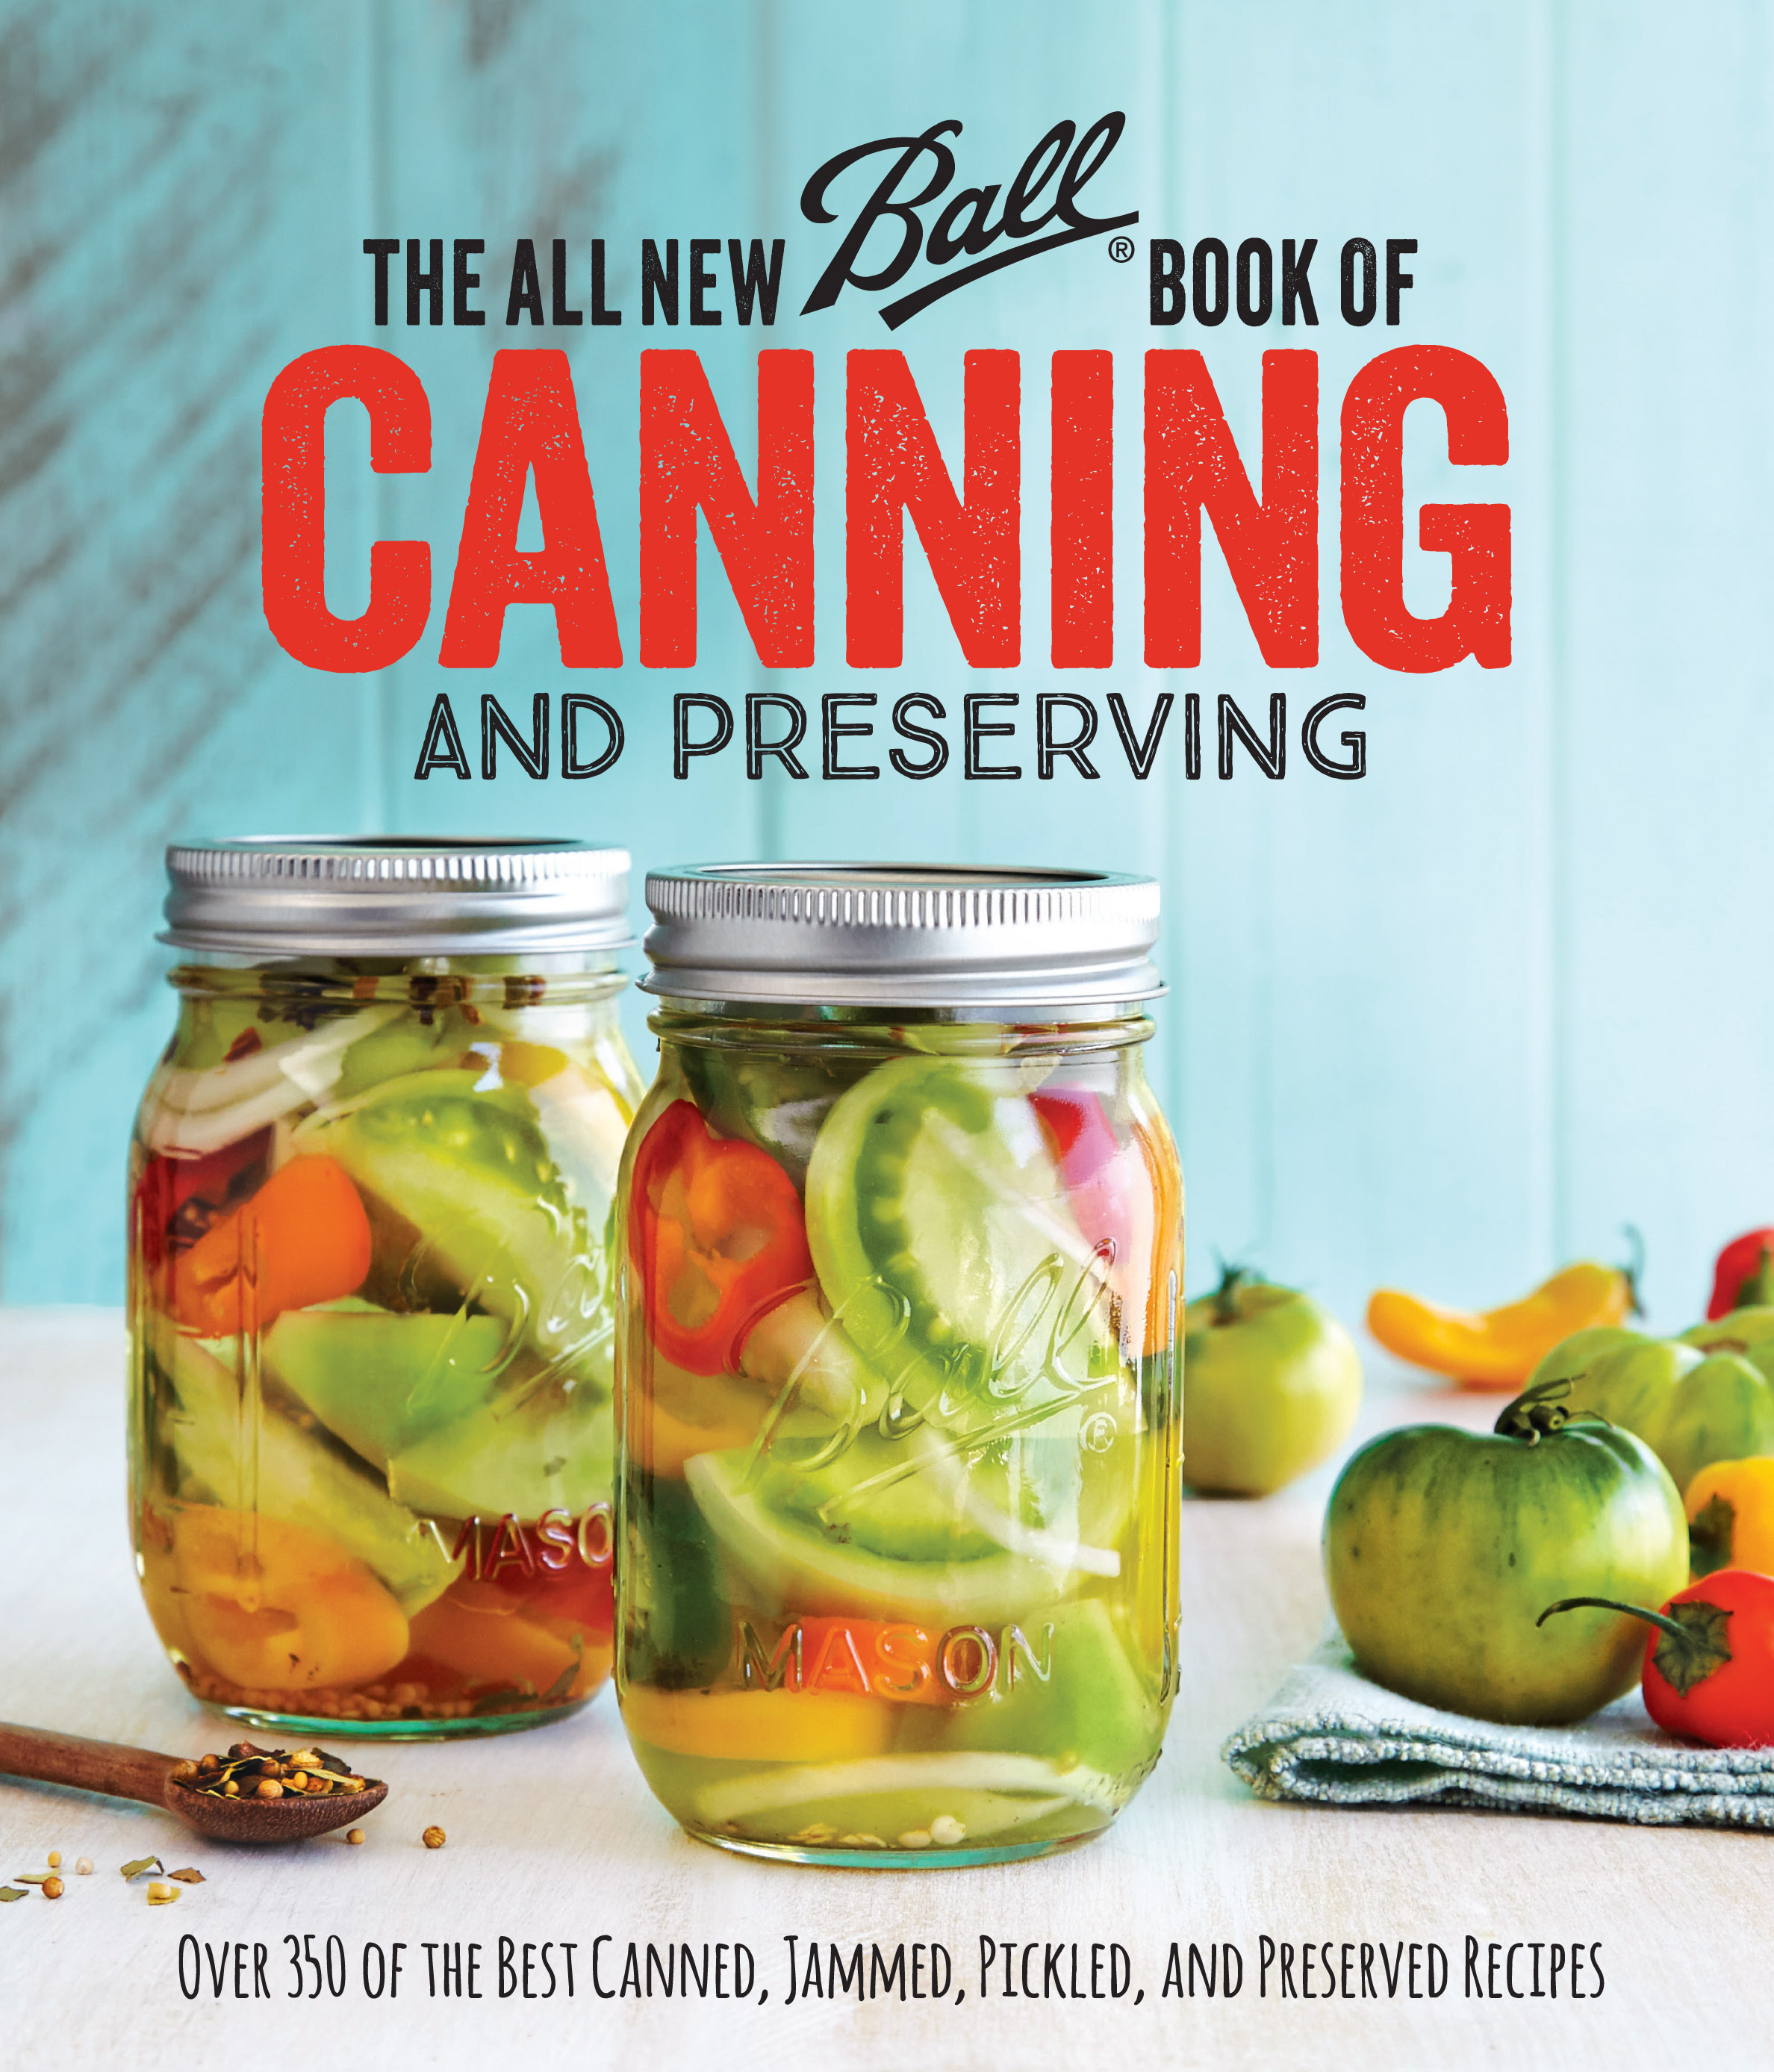 ball book of canning and preserving